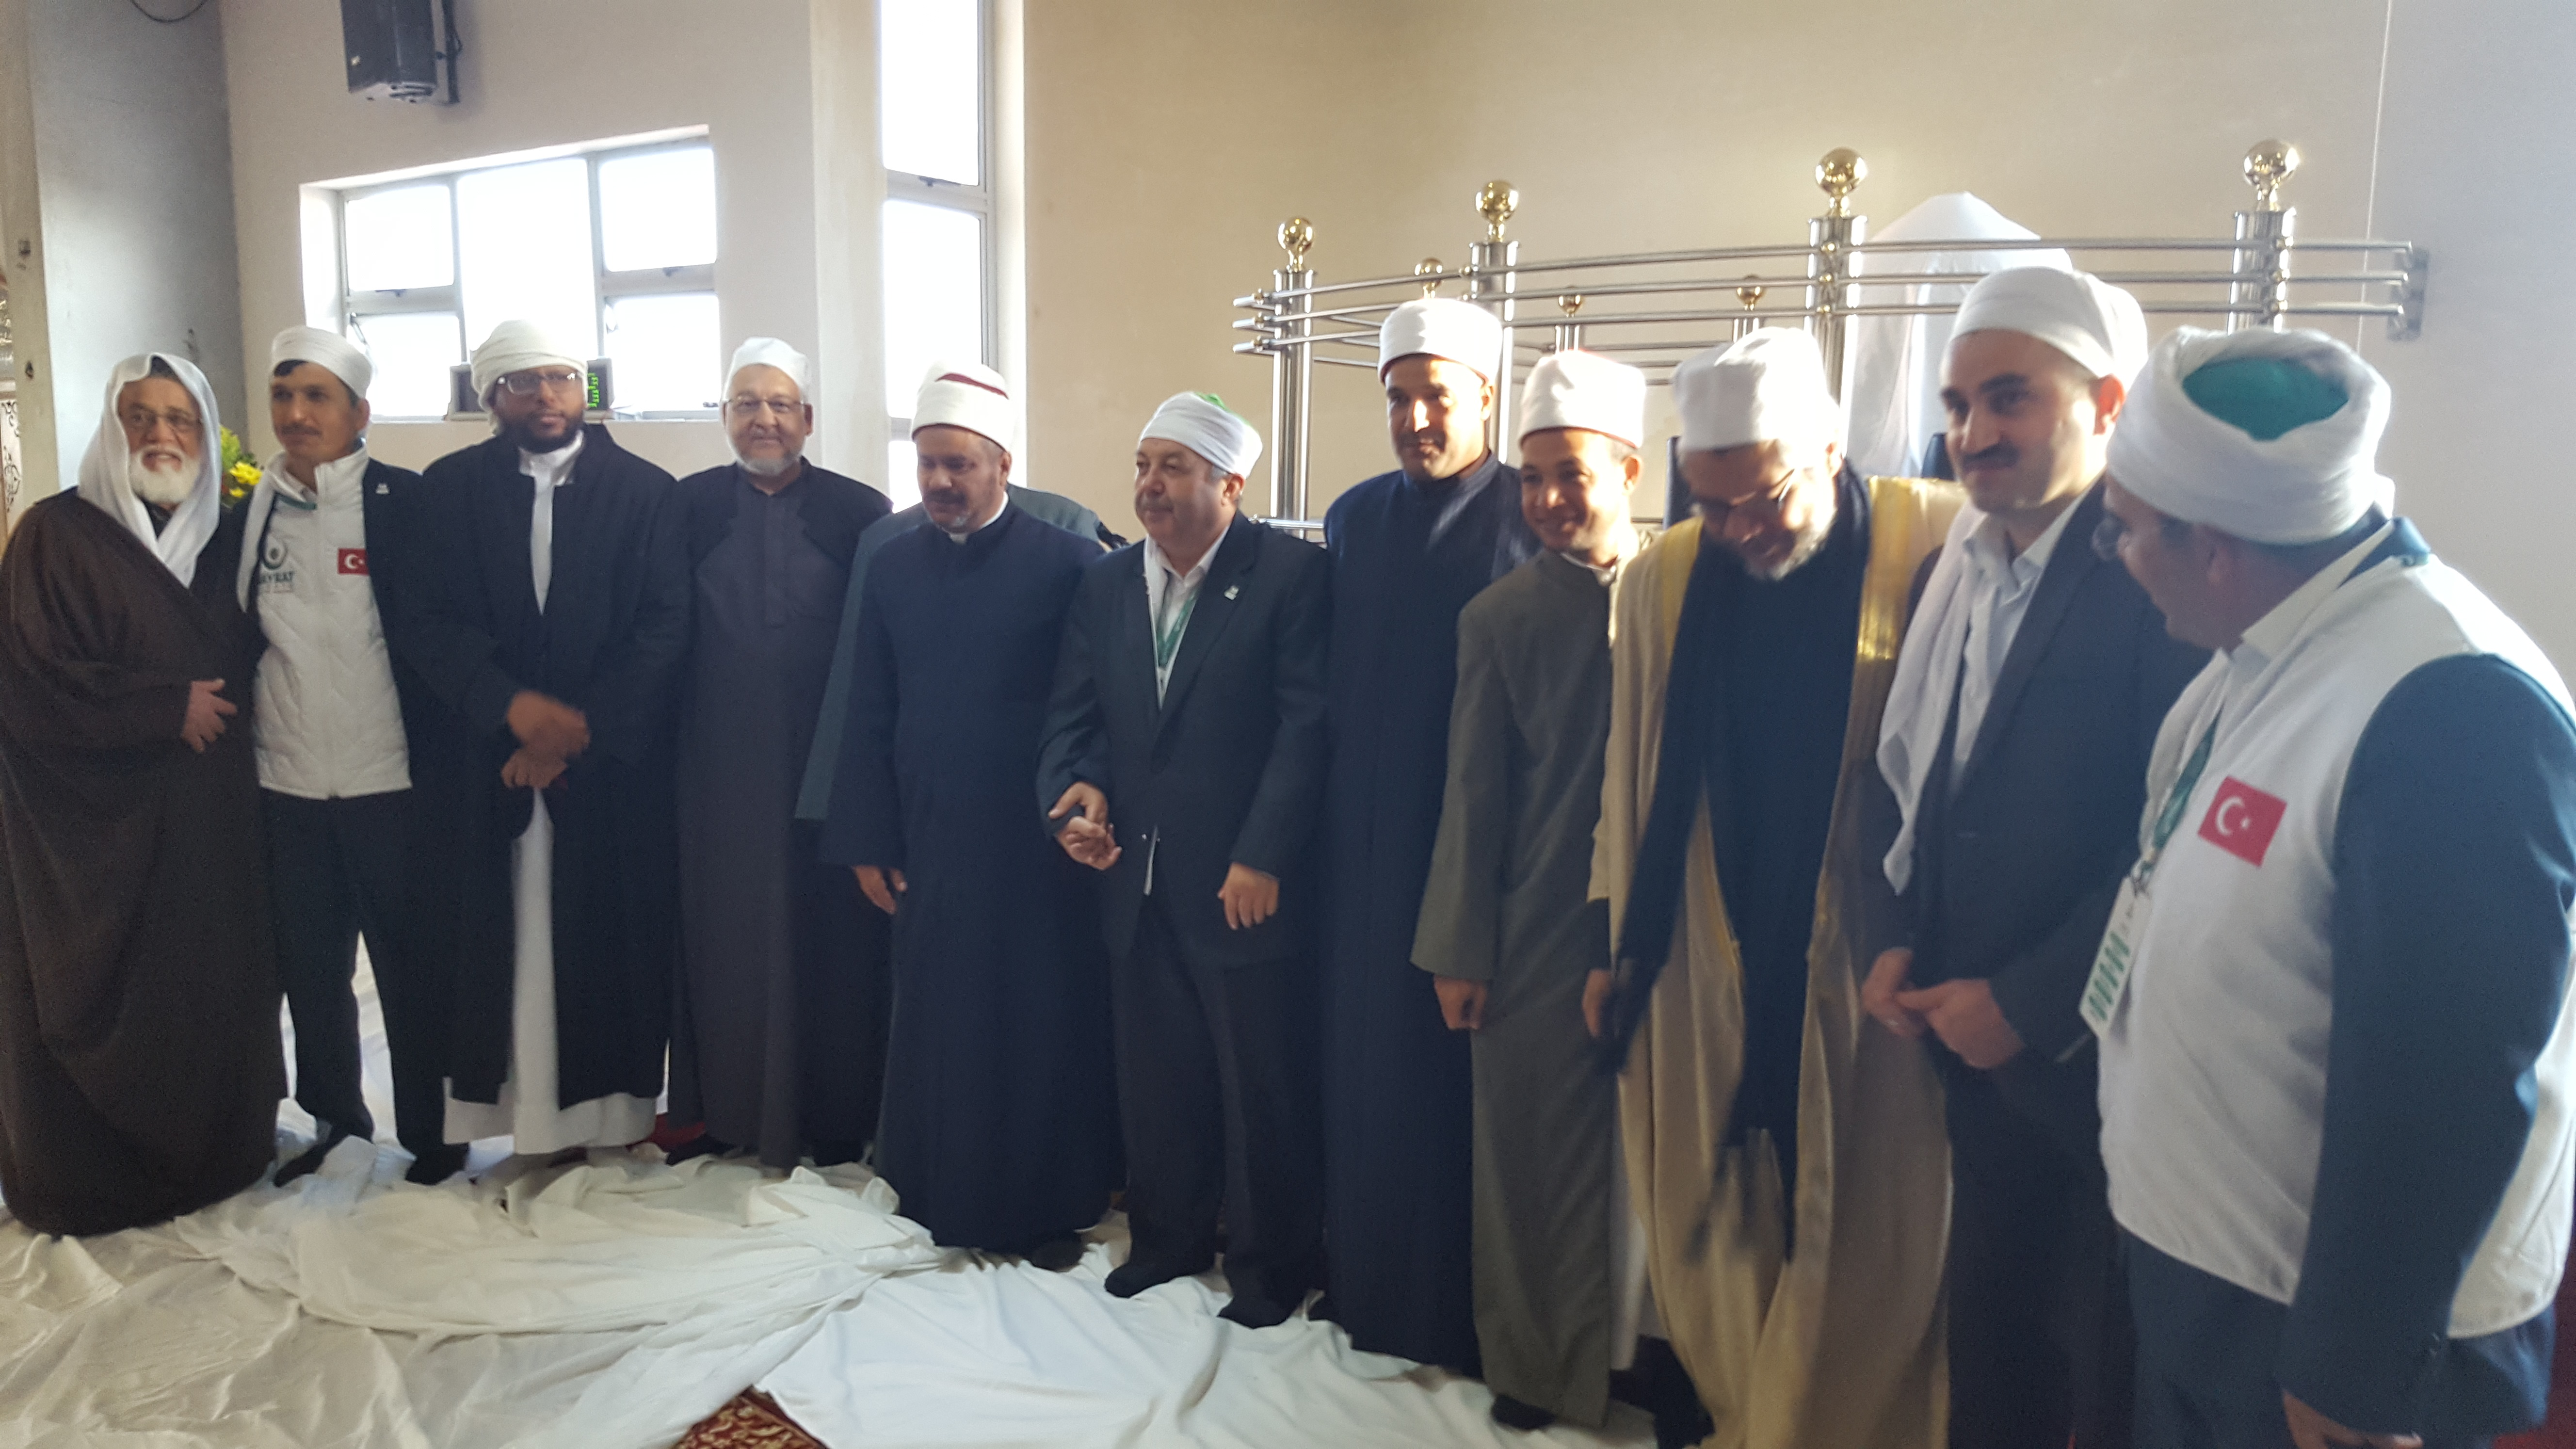 Eid Salaah was performed at the Darul Islam Surrey Estate under the auspices of Shaykh Moegamat Ighsaan Taliep, President of United Ulema Council of SA.